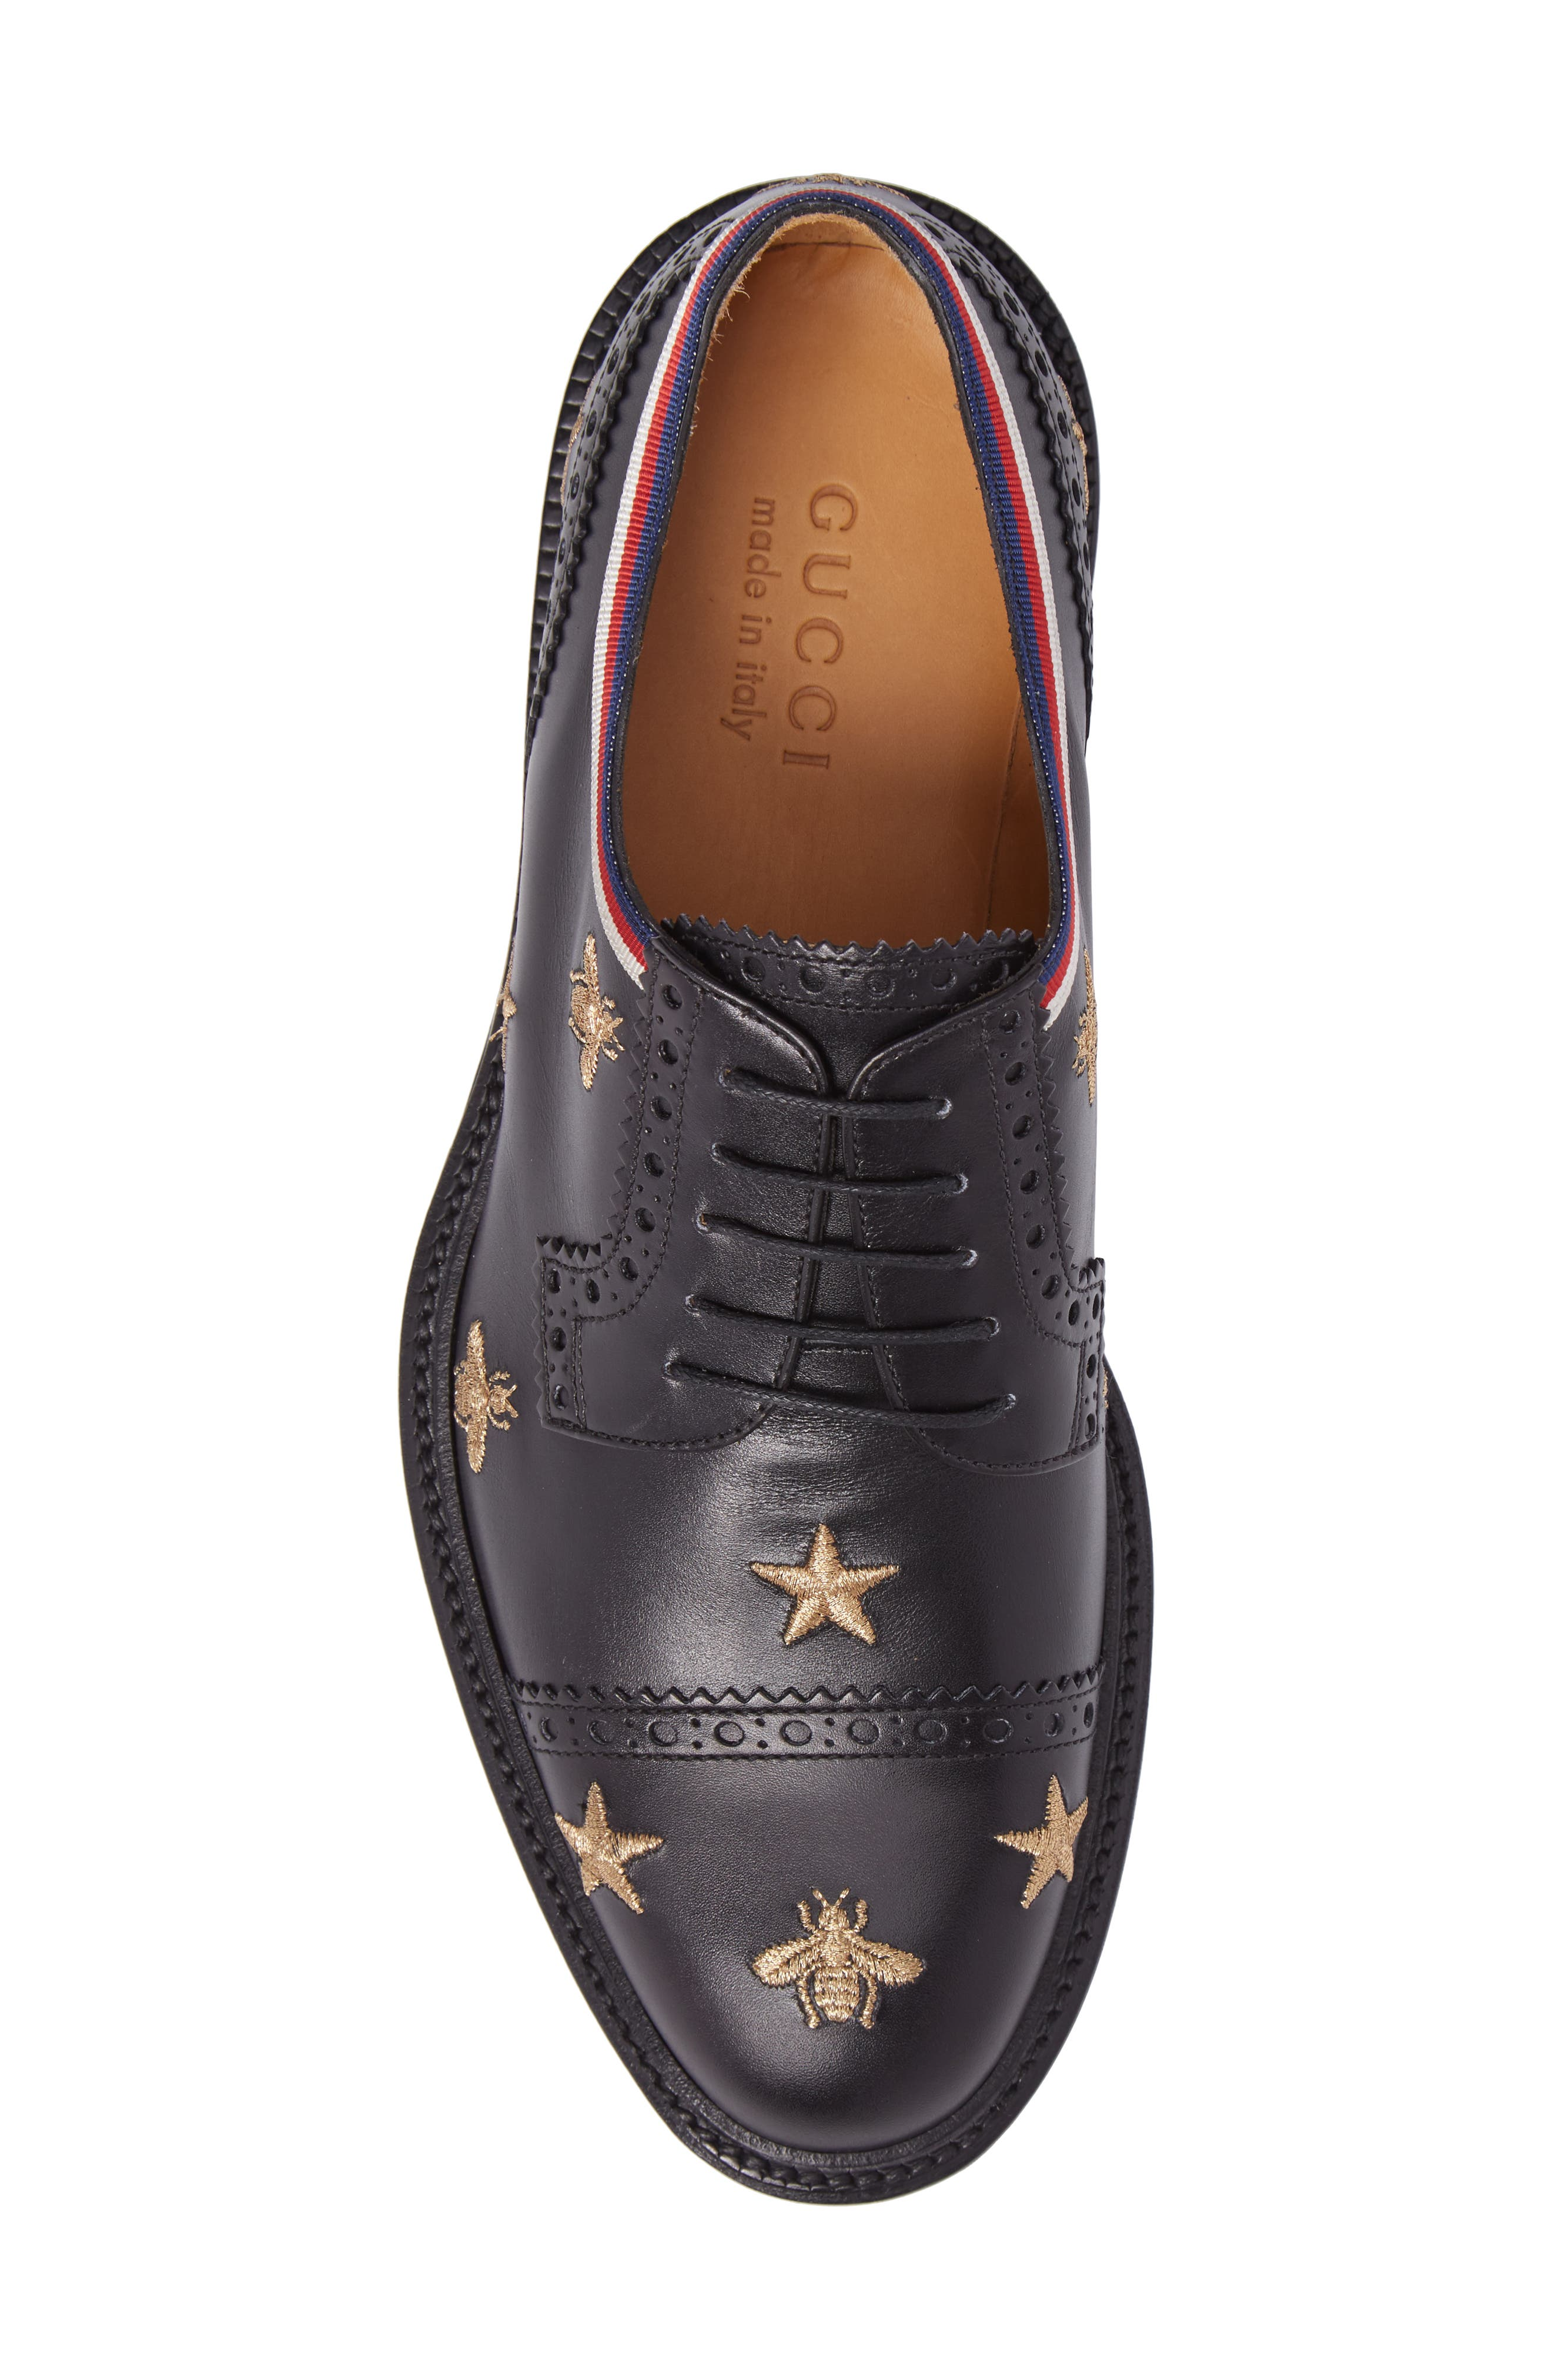 Embroidered Leather Brogue Shoe,                             Alternate thumbnail 5, color,                             Black